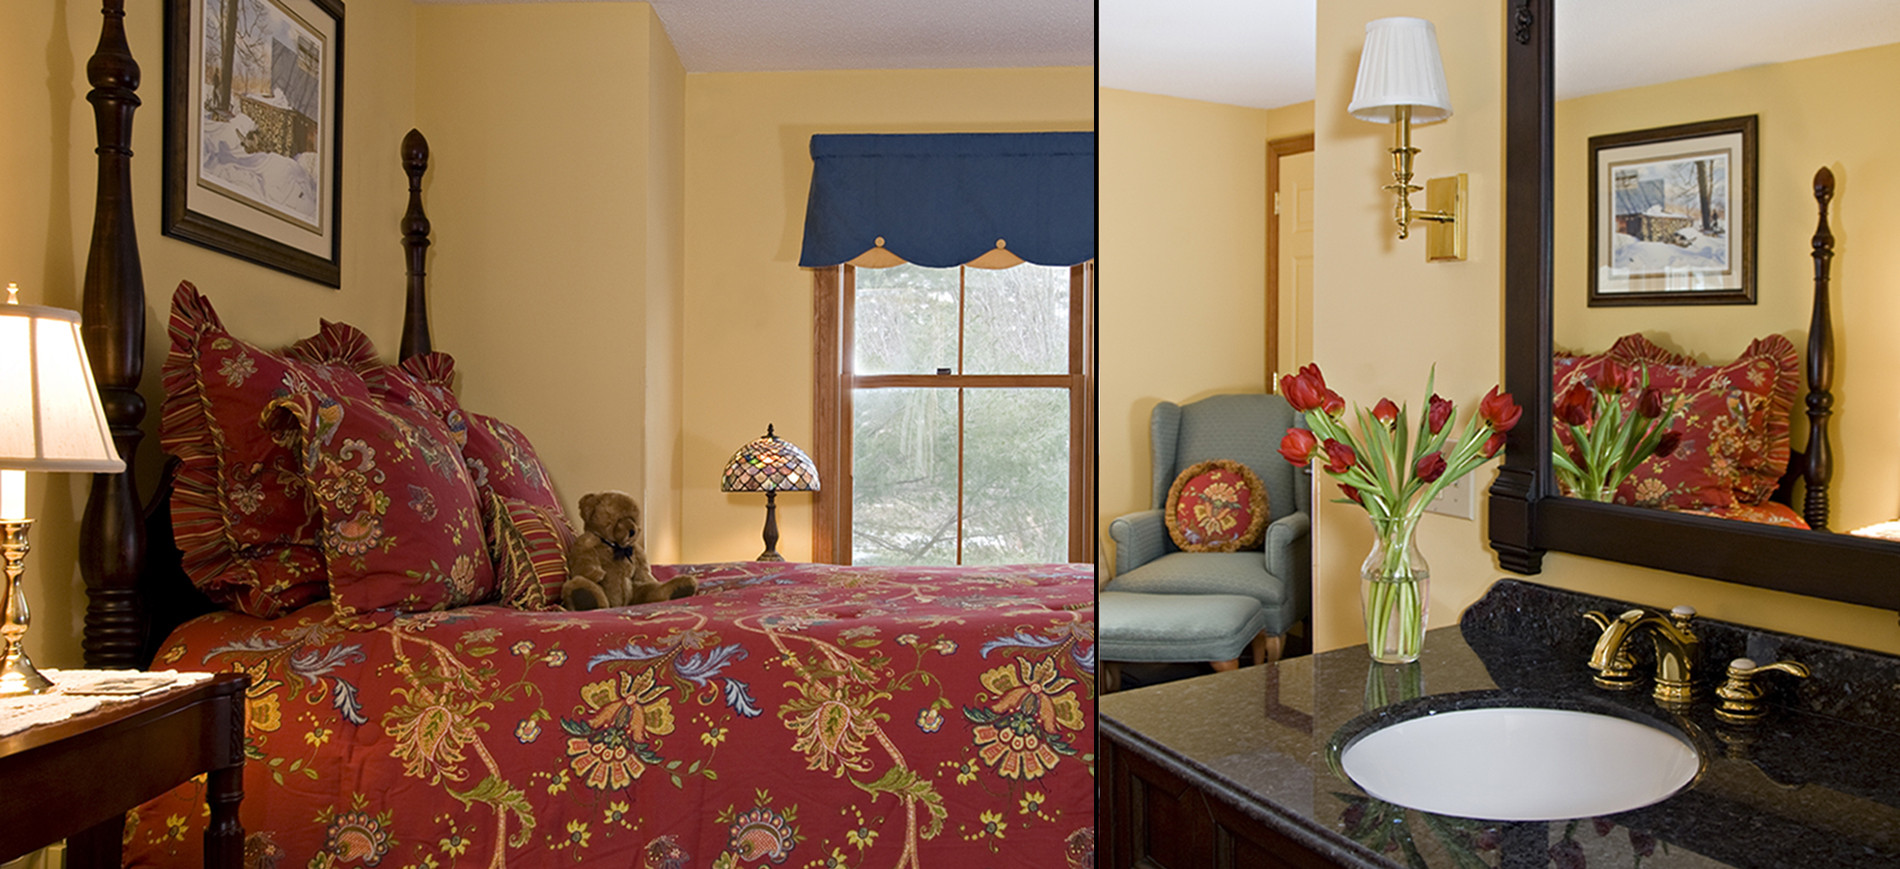 Gold guest room with queen bed with red & gold bedding, window with blue valence, green wing chair with ottoman, sink with mirror and lights above